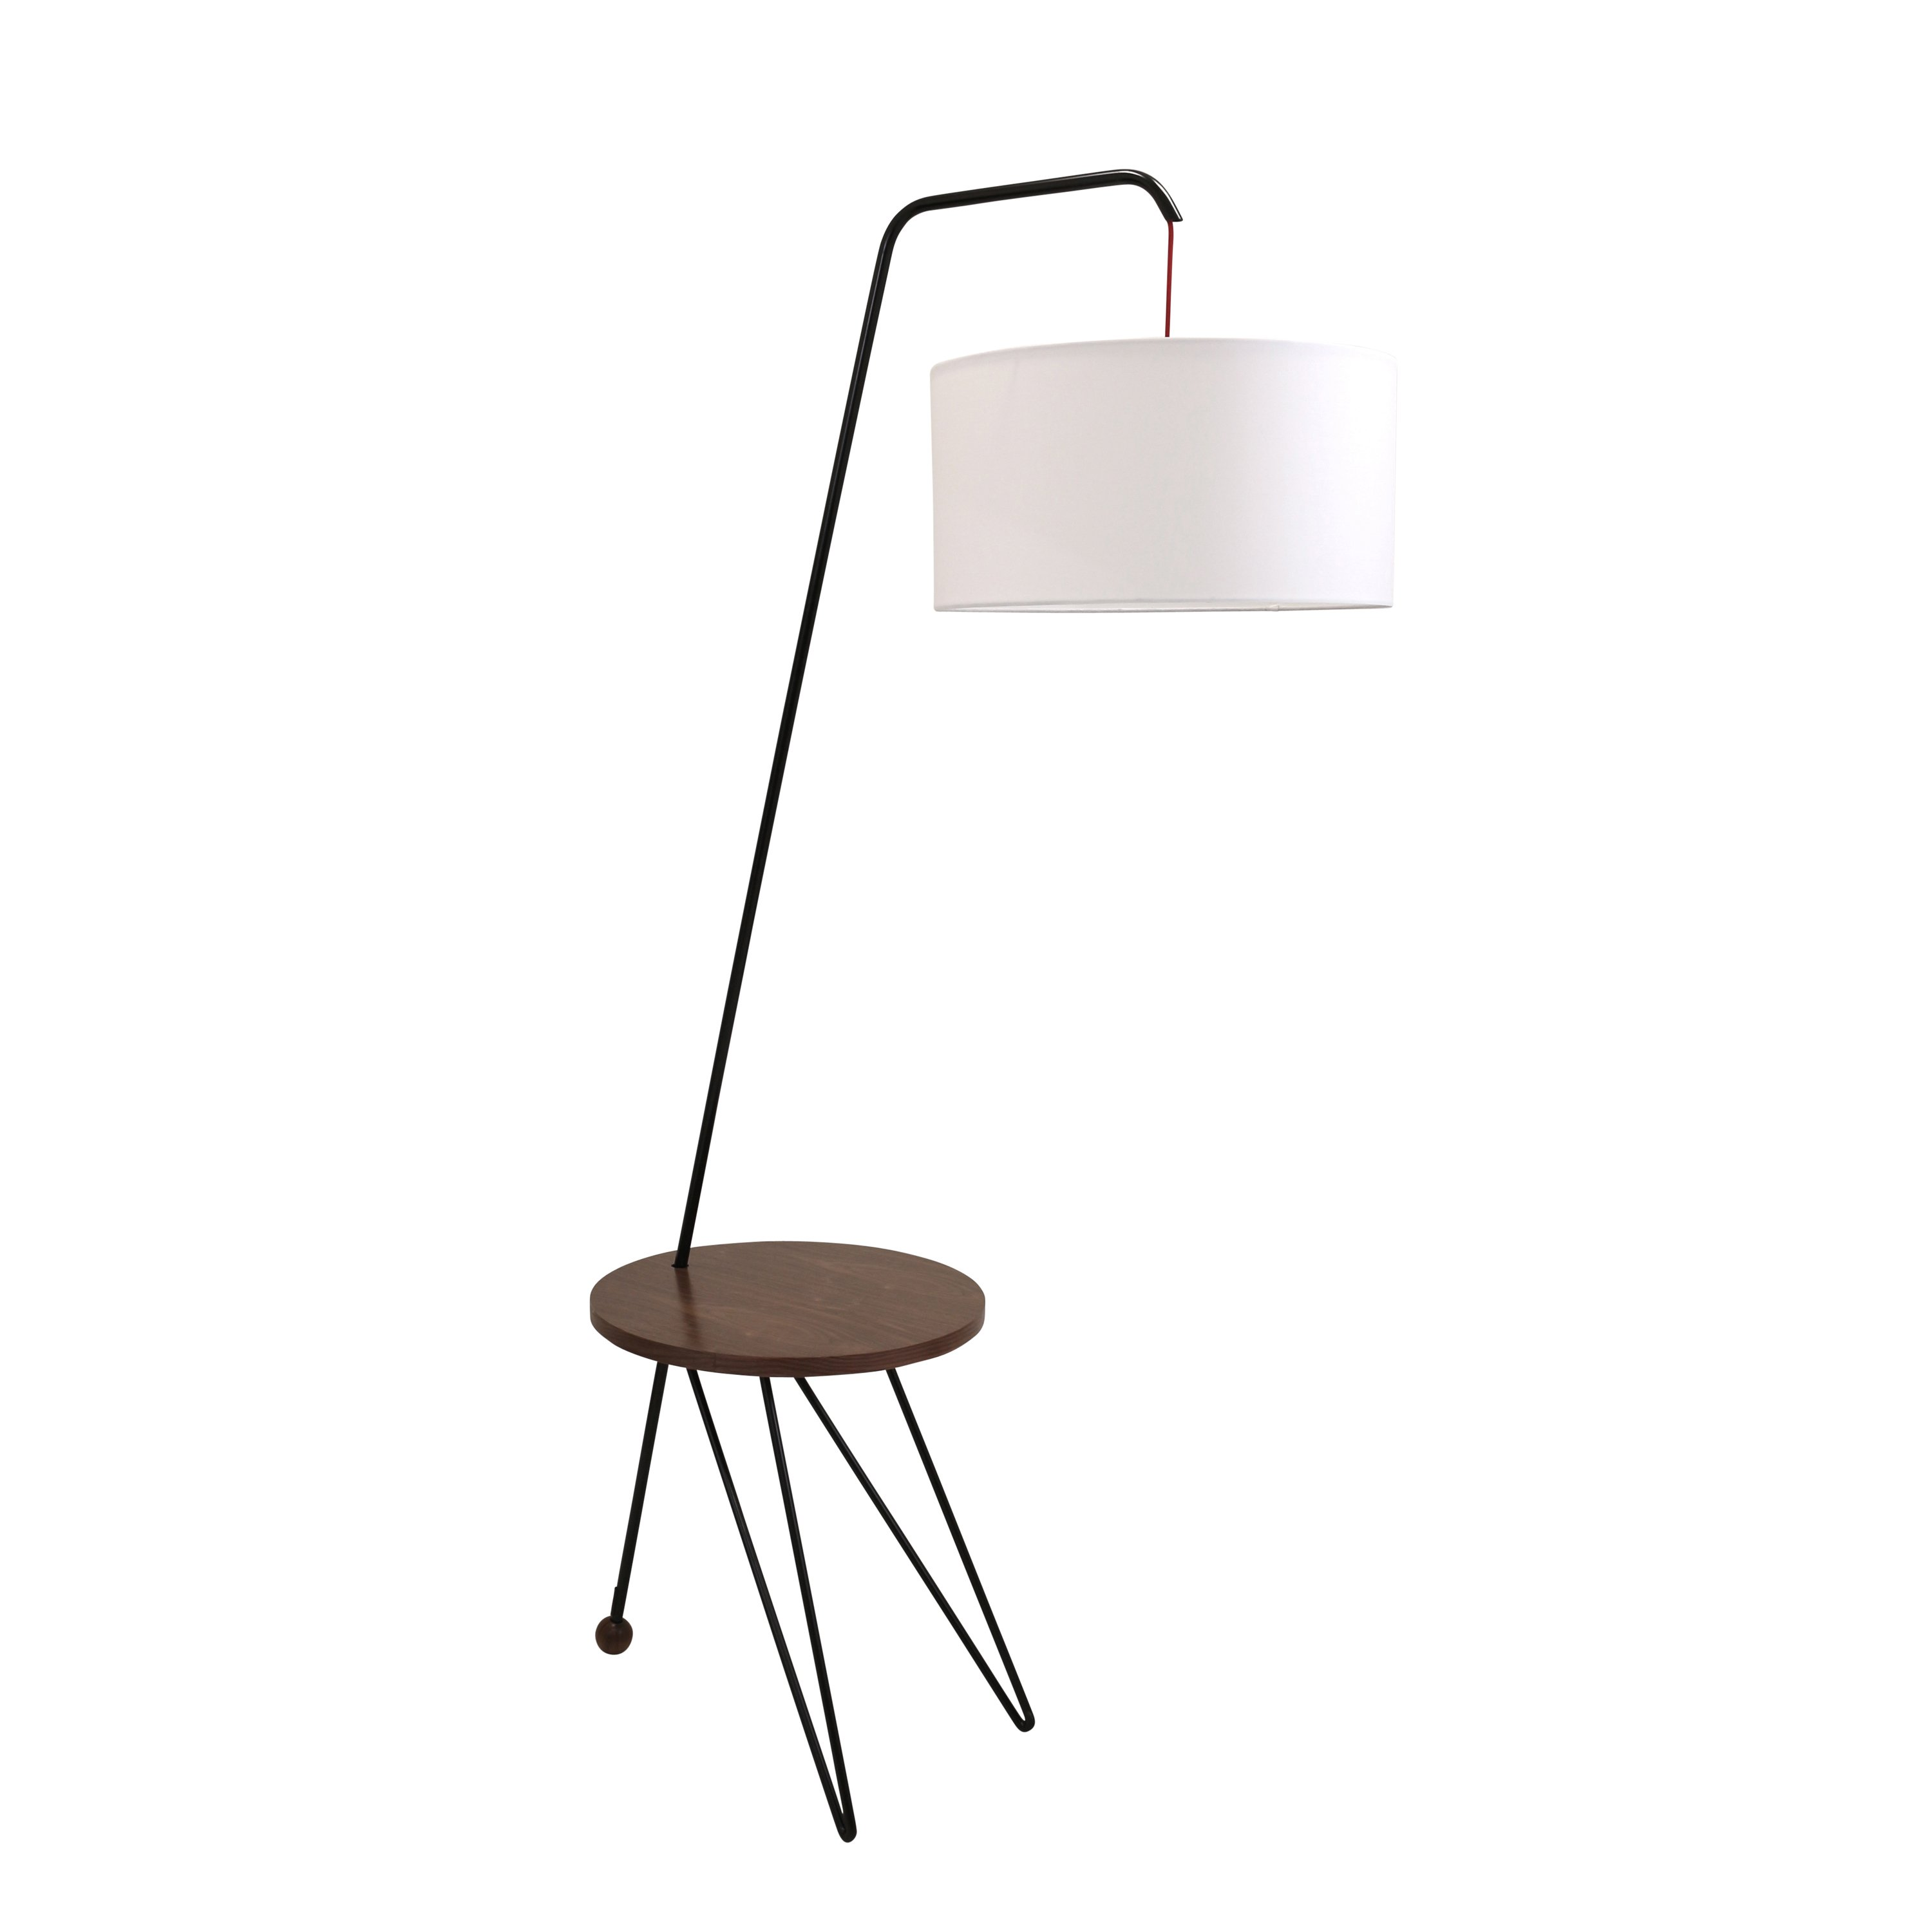 stork mid century modern floor lamp with walnut wood accent table tier target free shipping today bunnings outdoor couch tall narrow end high top stools round bistro ikea dining